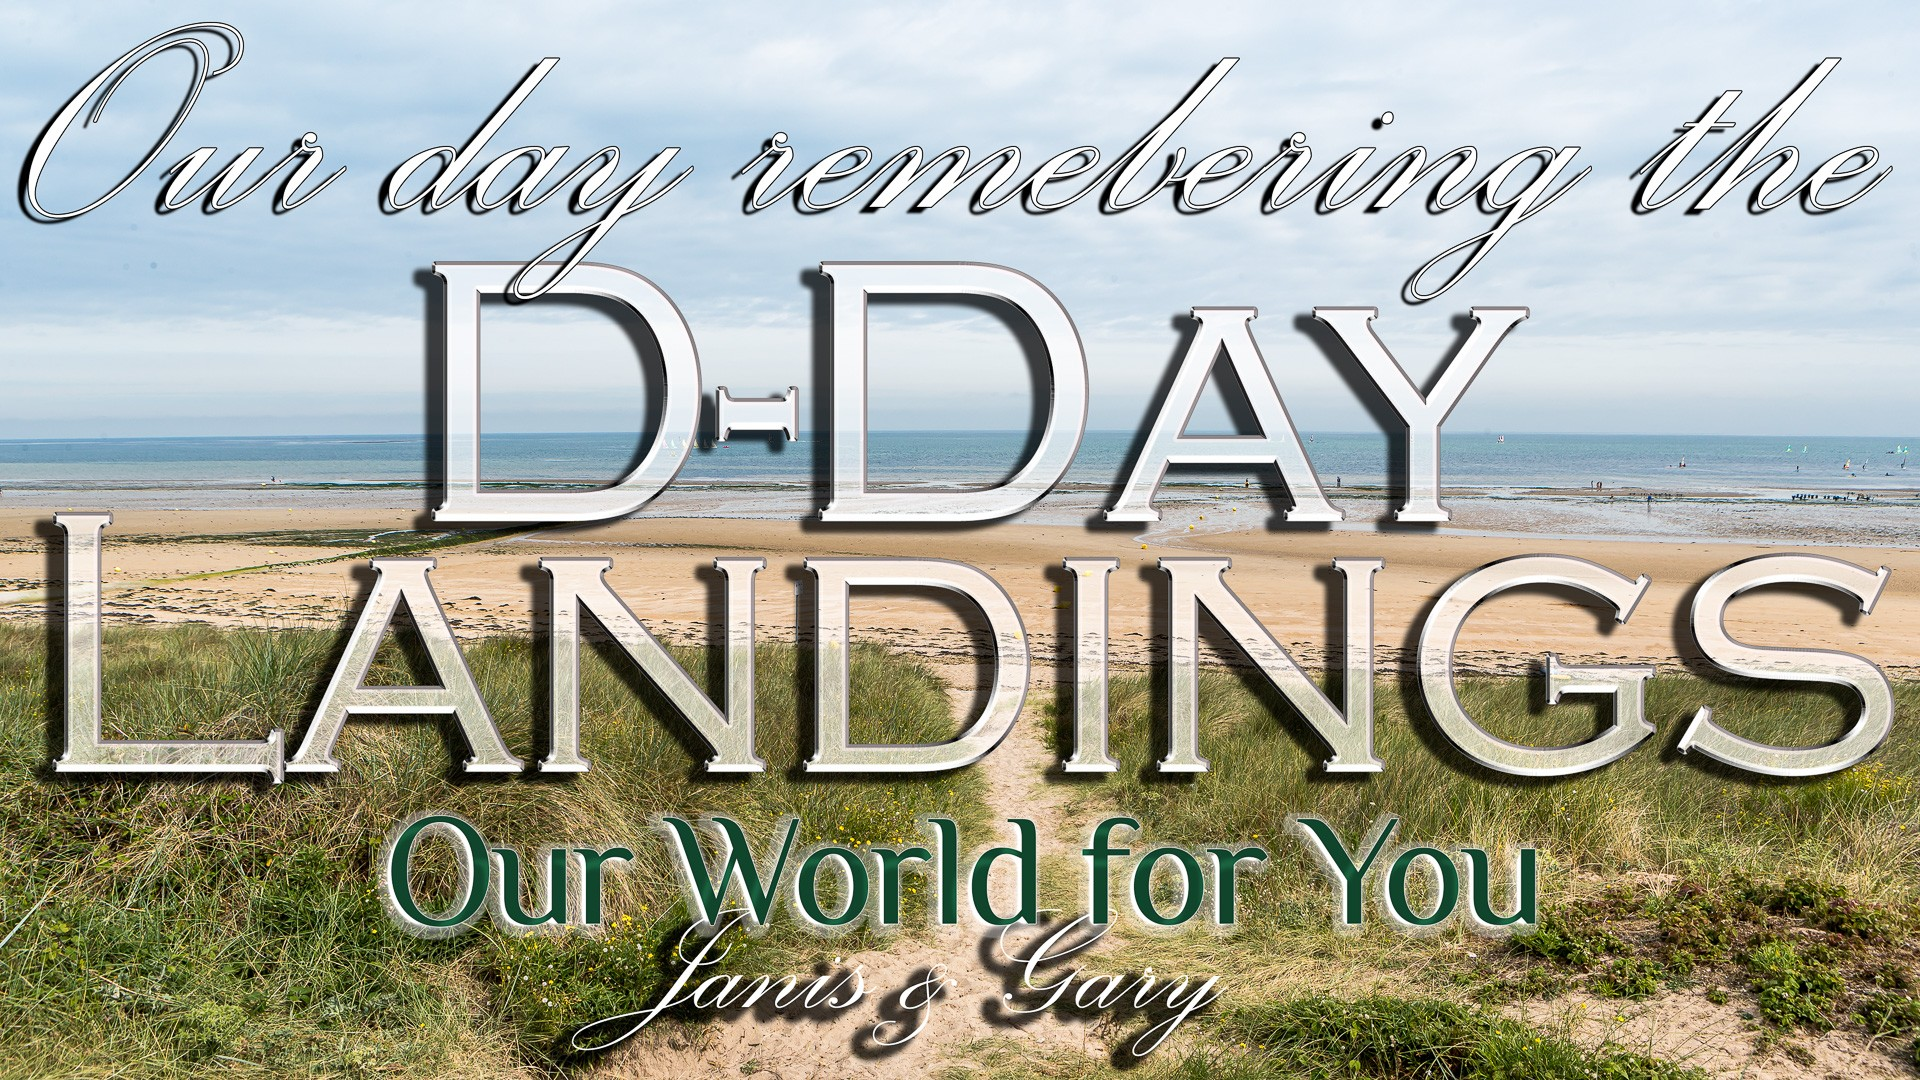 The Thumbnail of our video - ' Our day remembering the Normandy D-Day Landings '